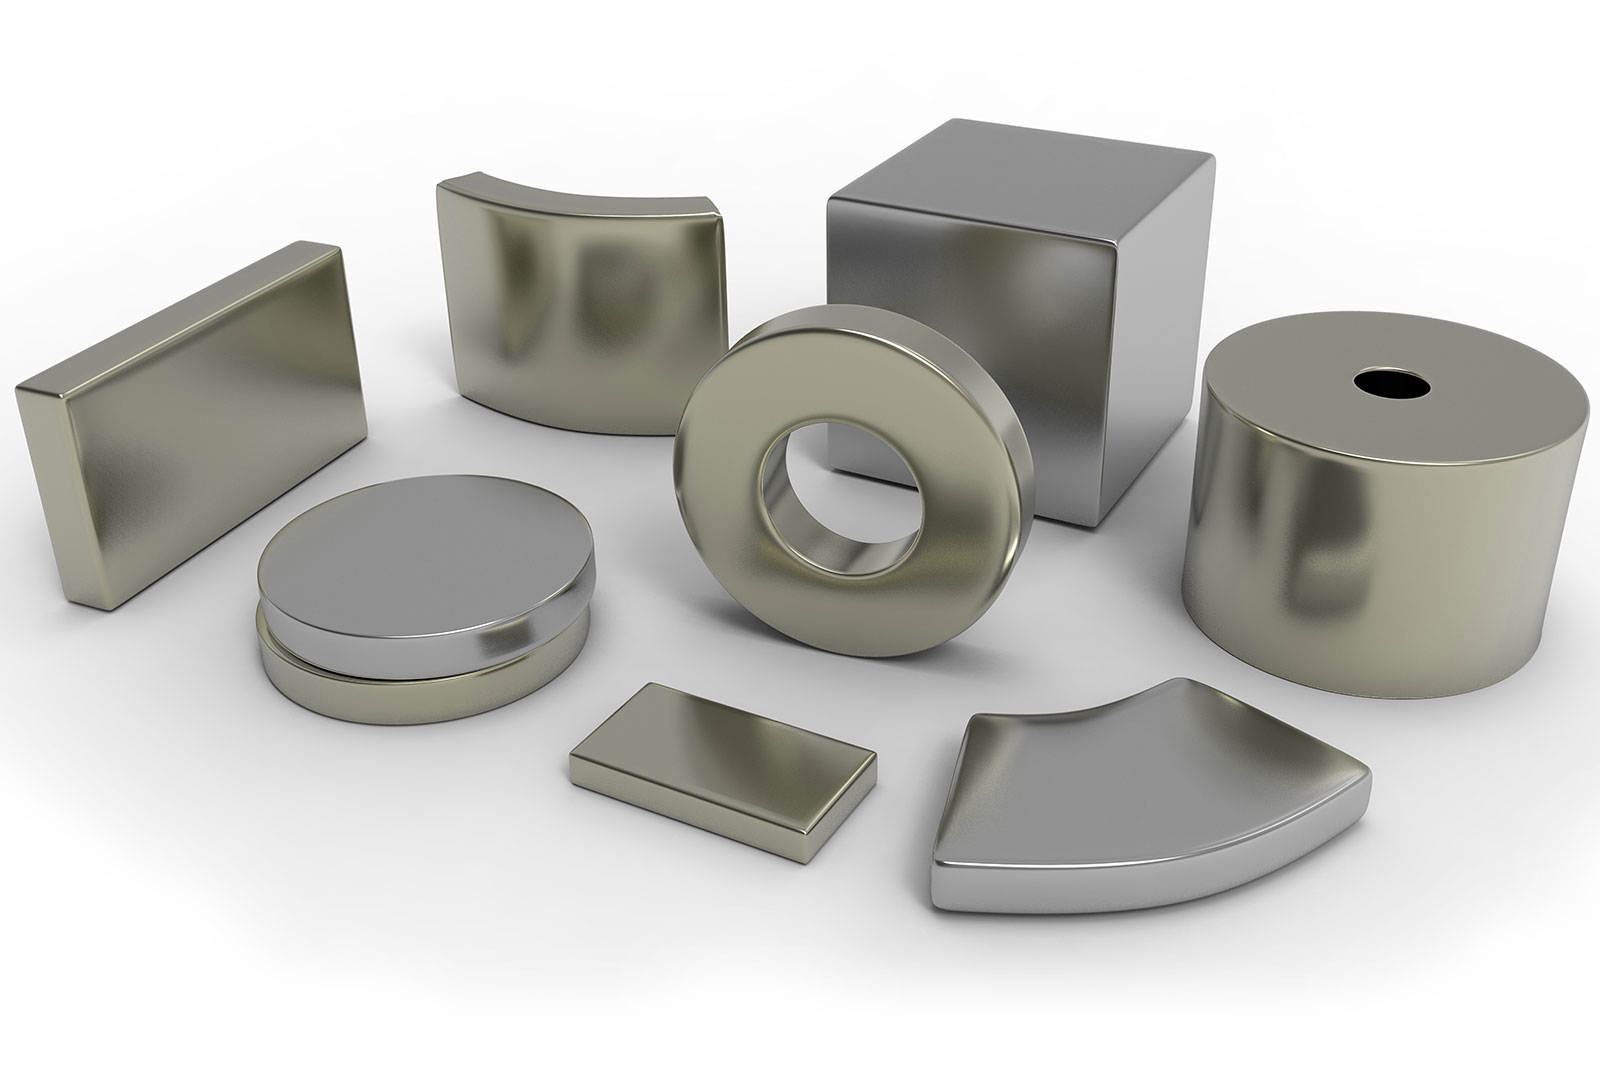 How To Identify The Quality Of A Sintered Nd-Fe-B Neodymium Magnet?